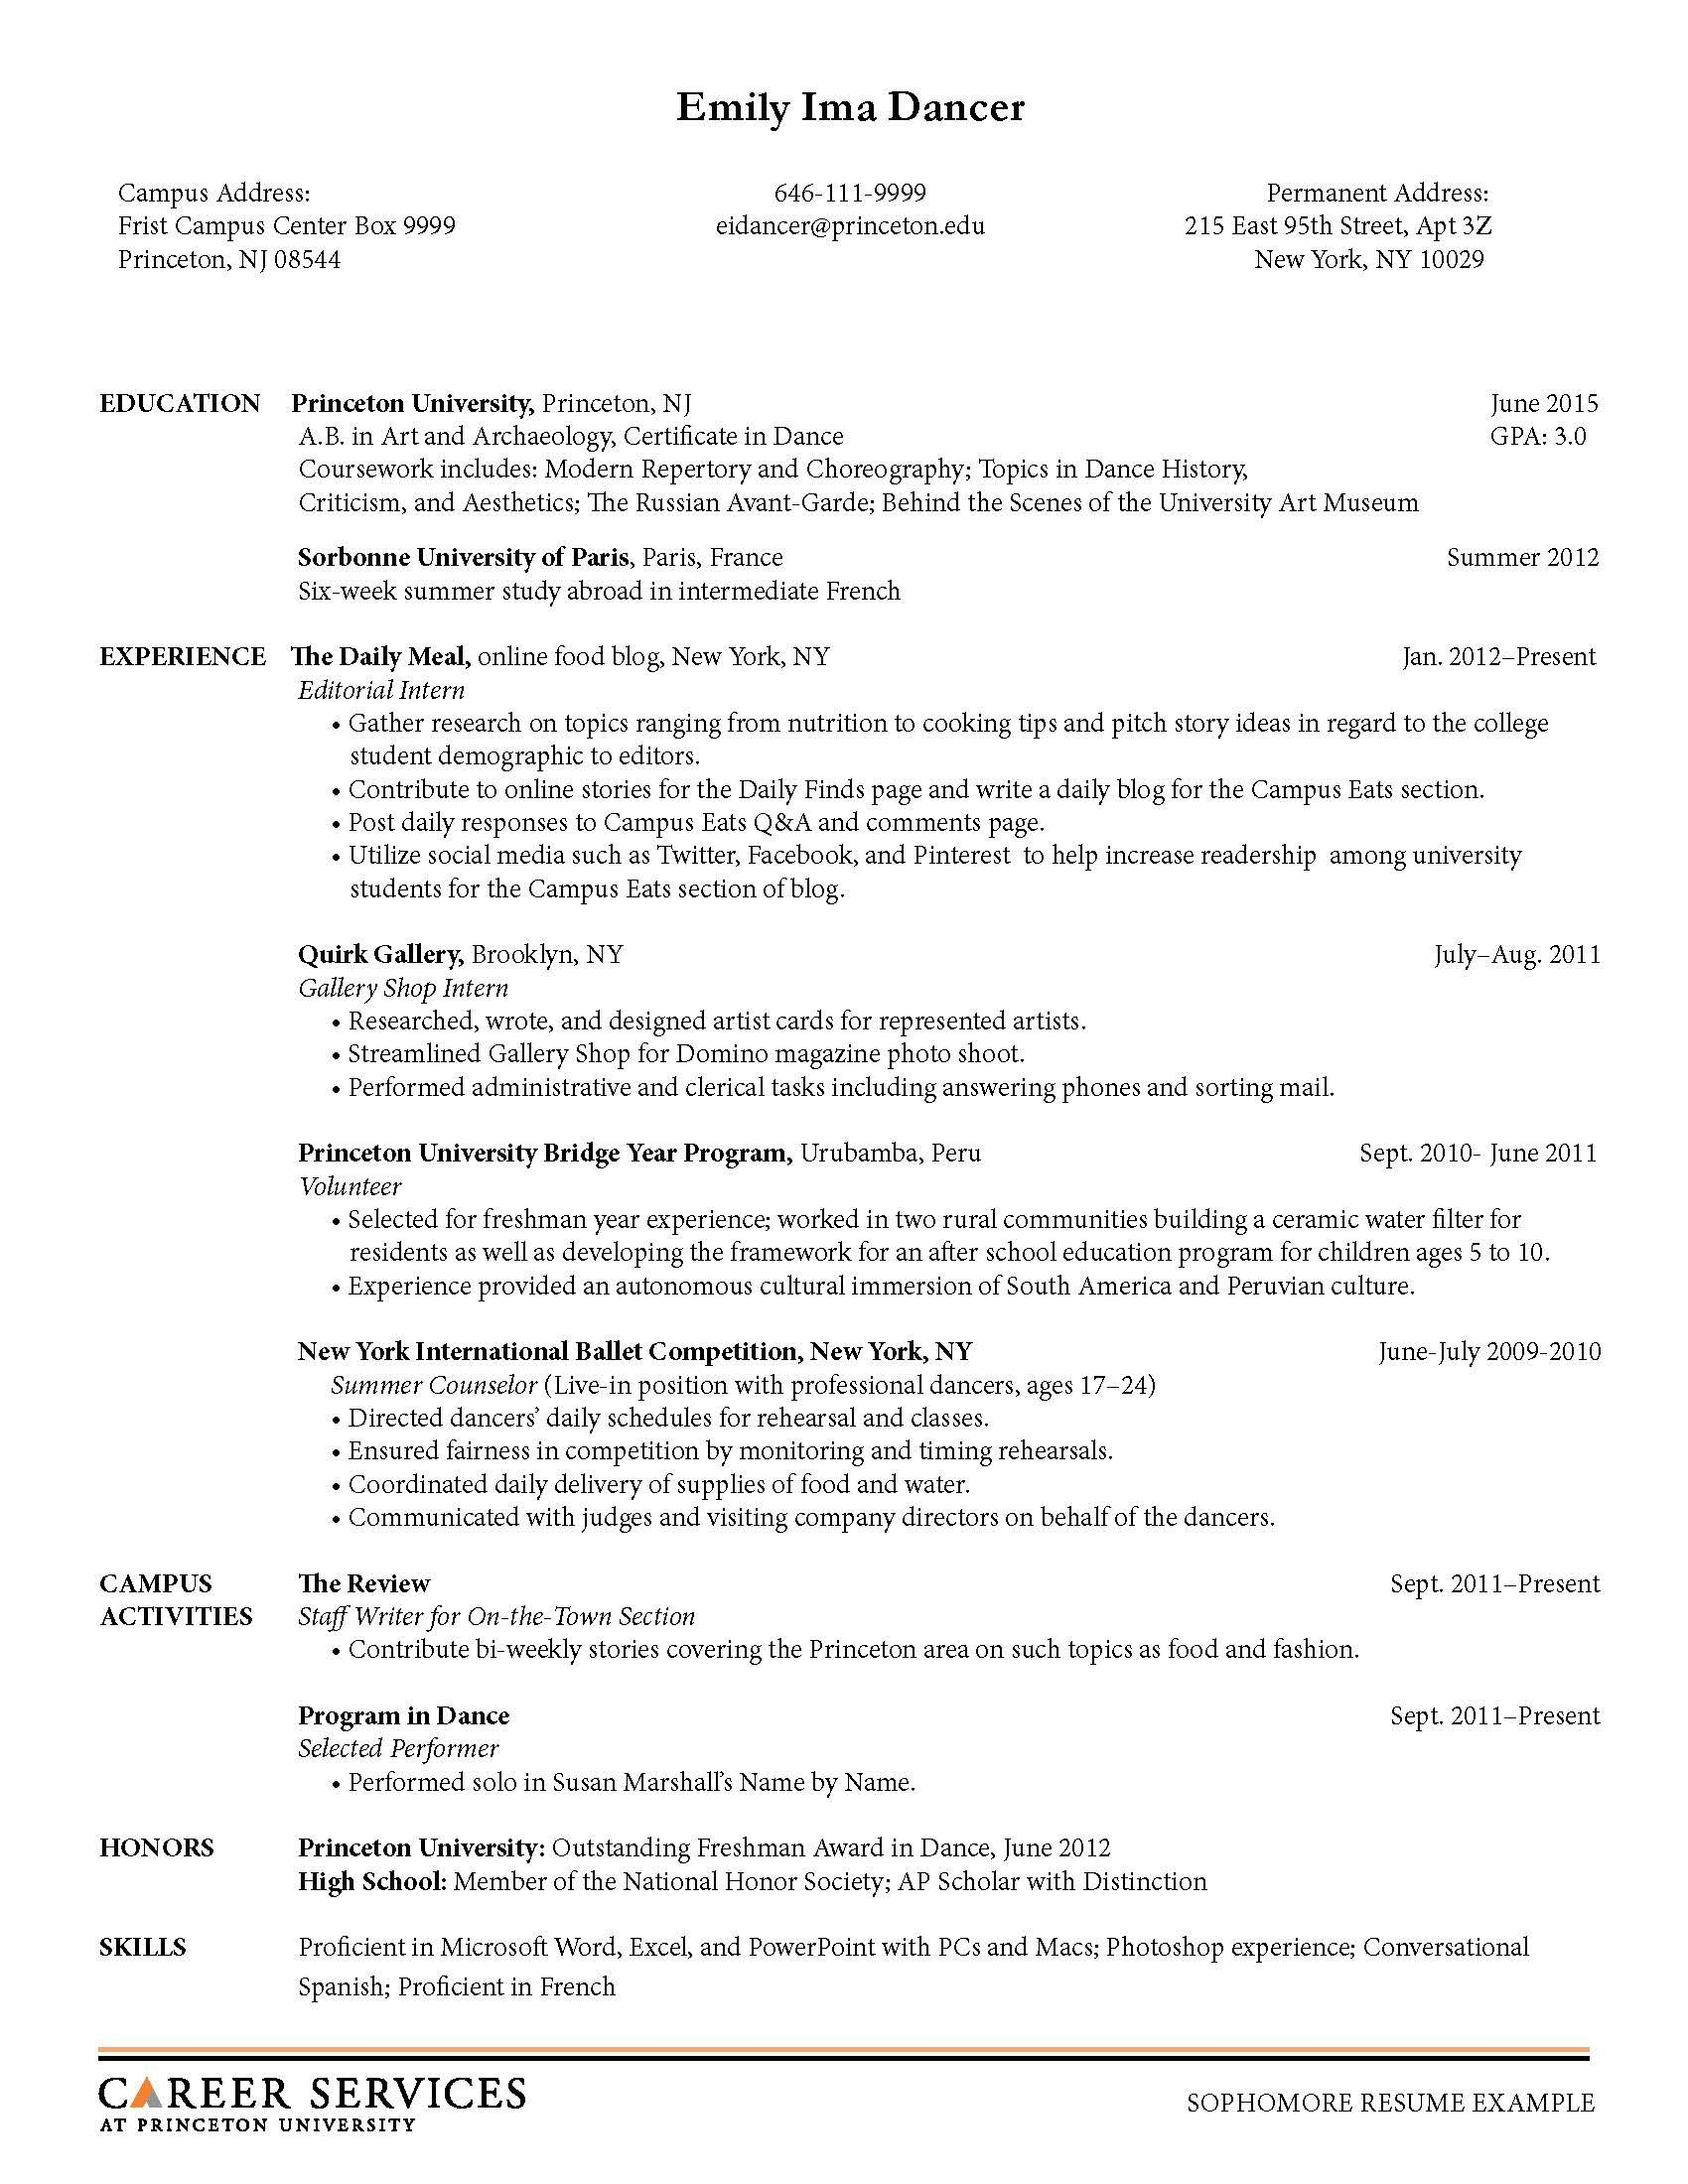 Resume CV Cover Letter branded executive resumes written by an